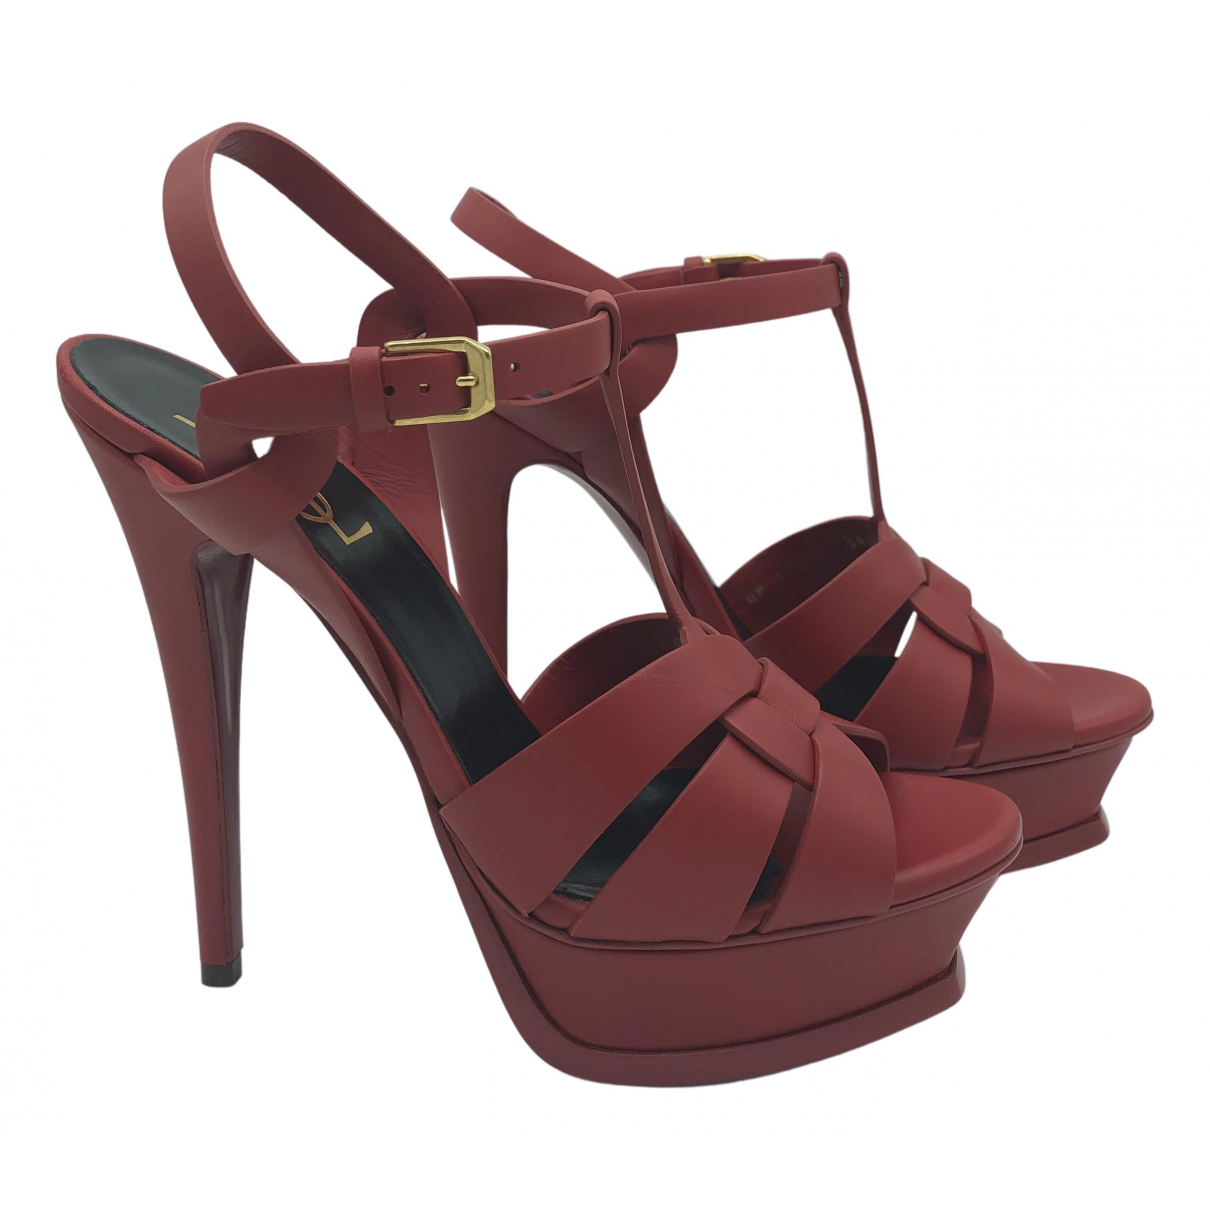 Saint Laurent Tribute Red Leather Sandals for Women 38 EU